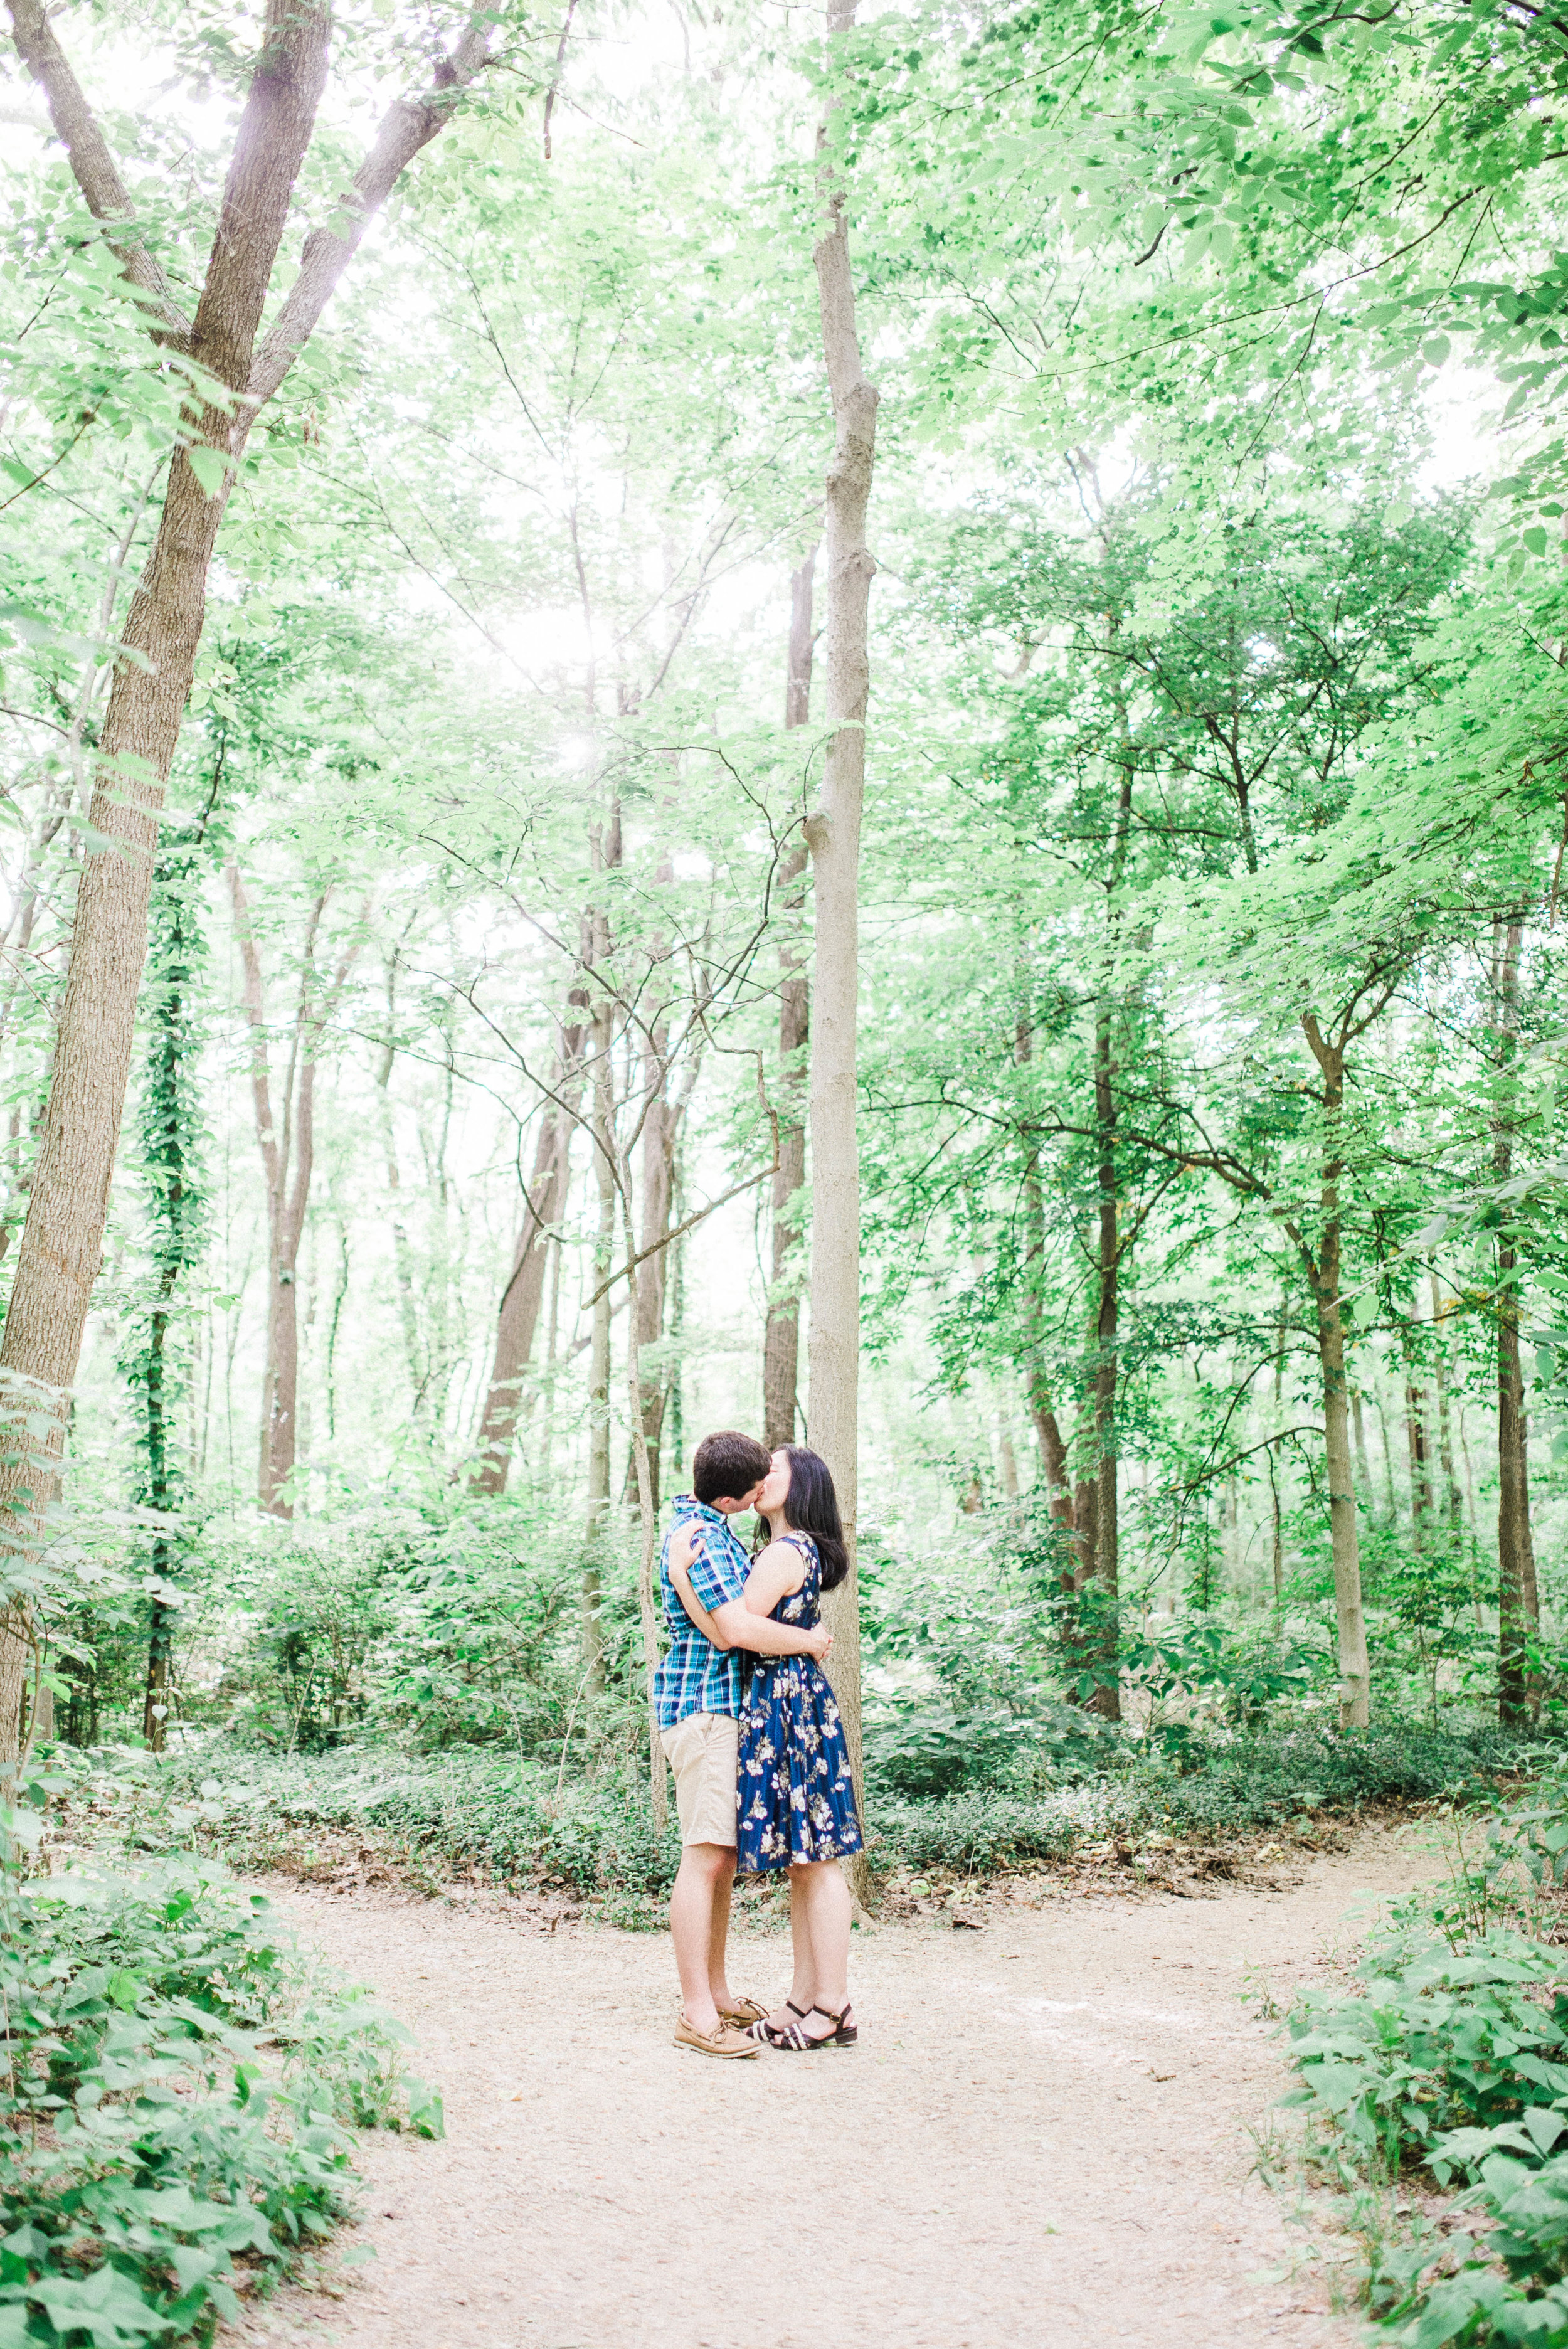 Romantic Natural Light Engagement Photography in the Woods | Elopement & Destination Wedding Photographers based in Indianapolis, IN | Katerina Marie Photography - www.katmariepad.com